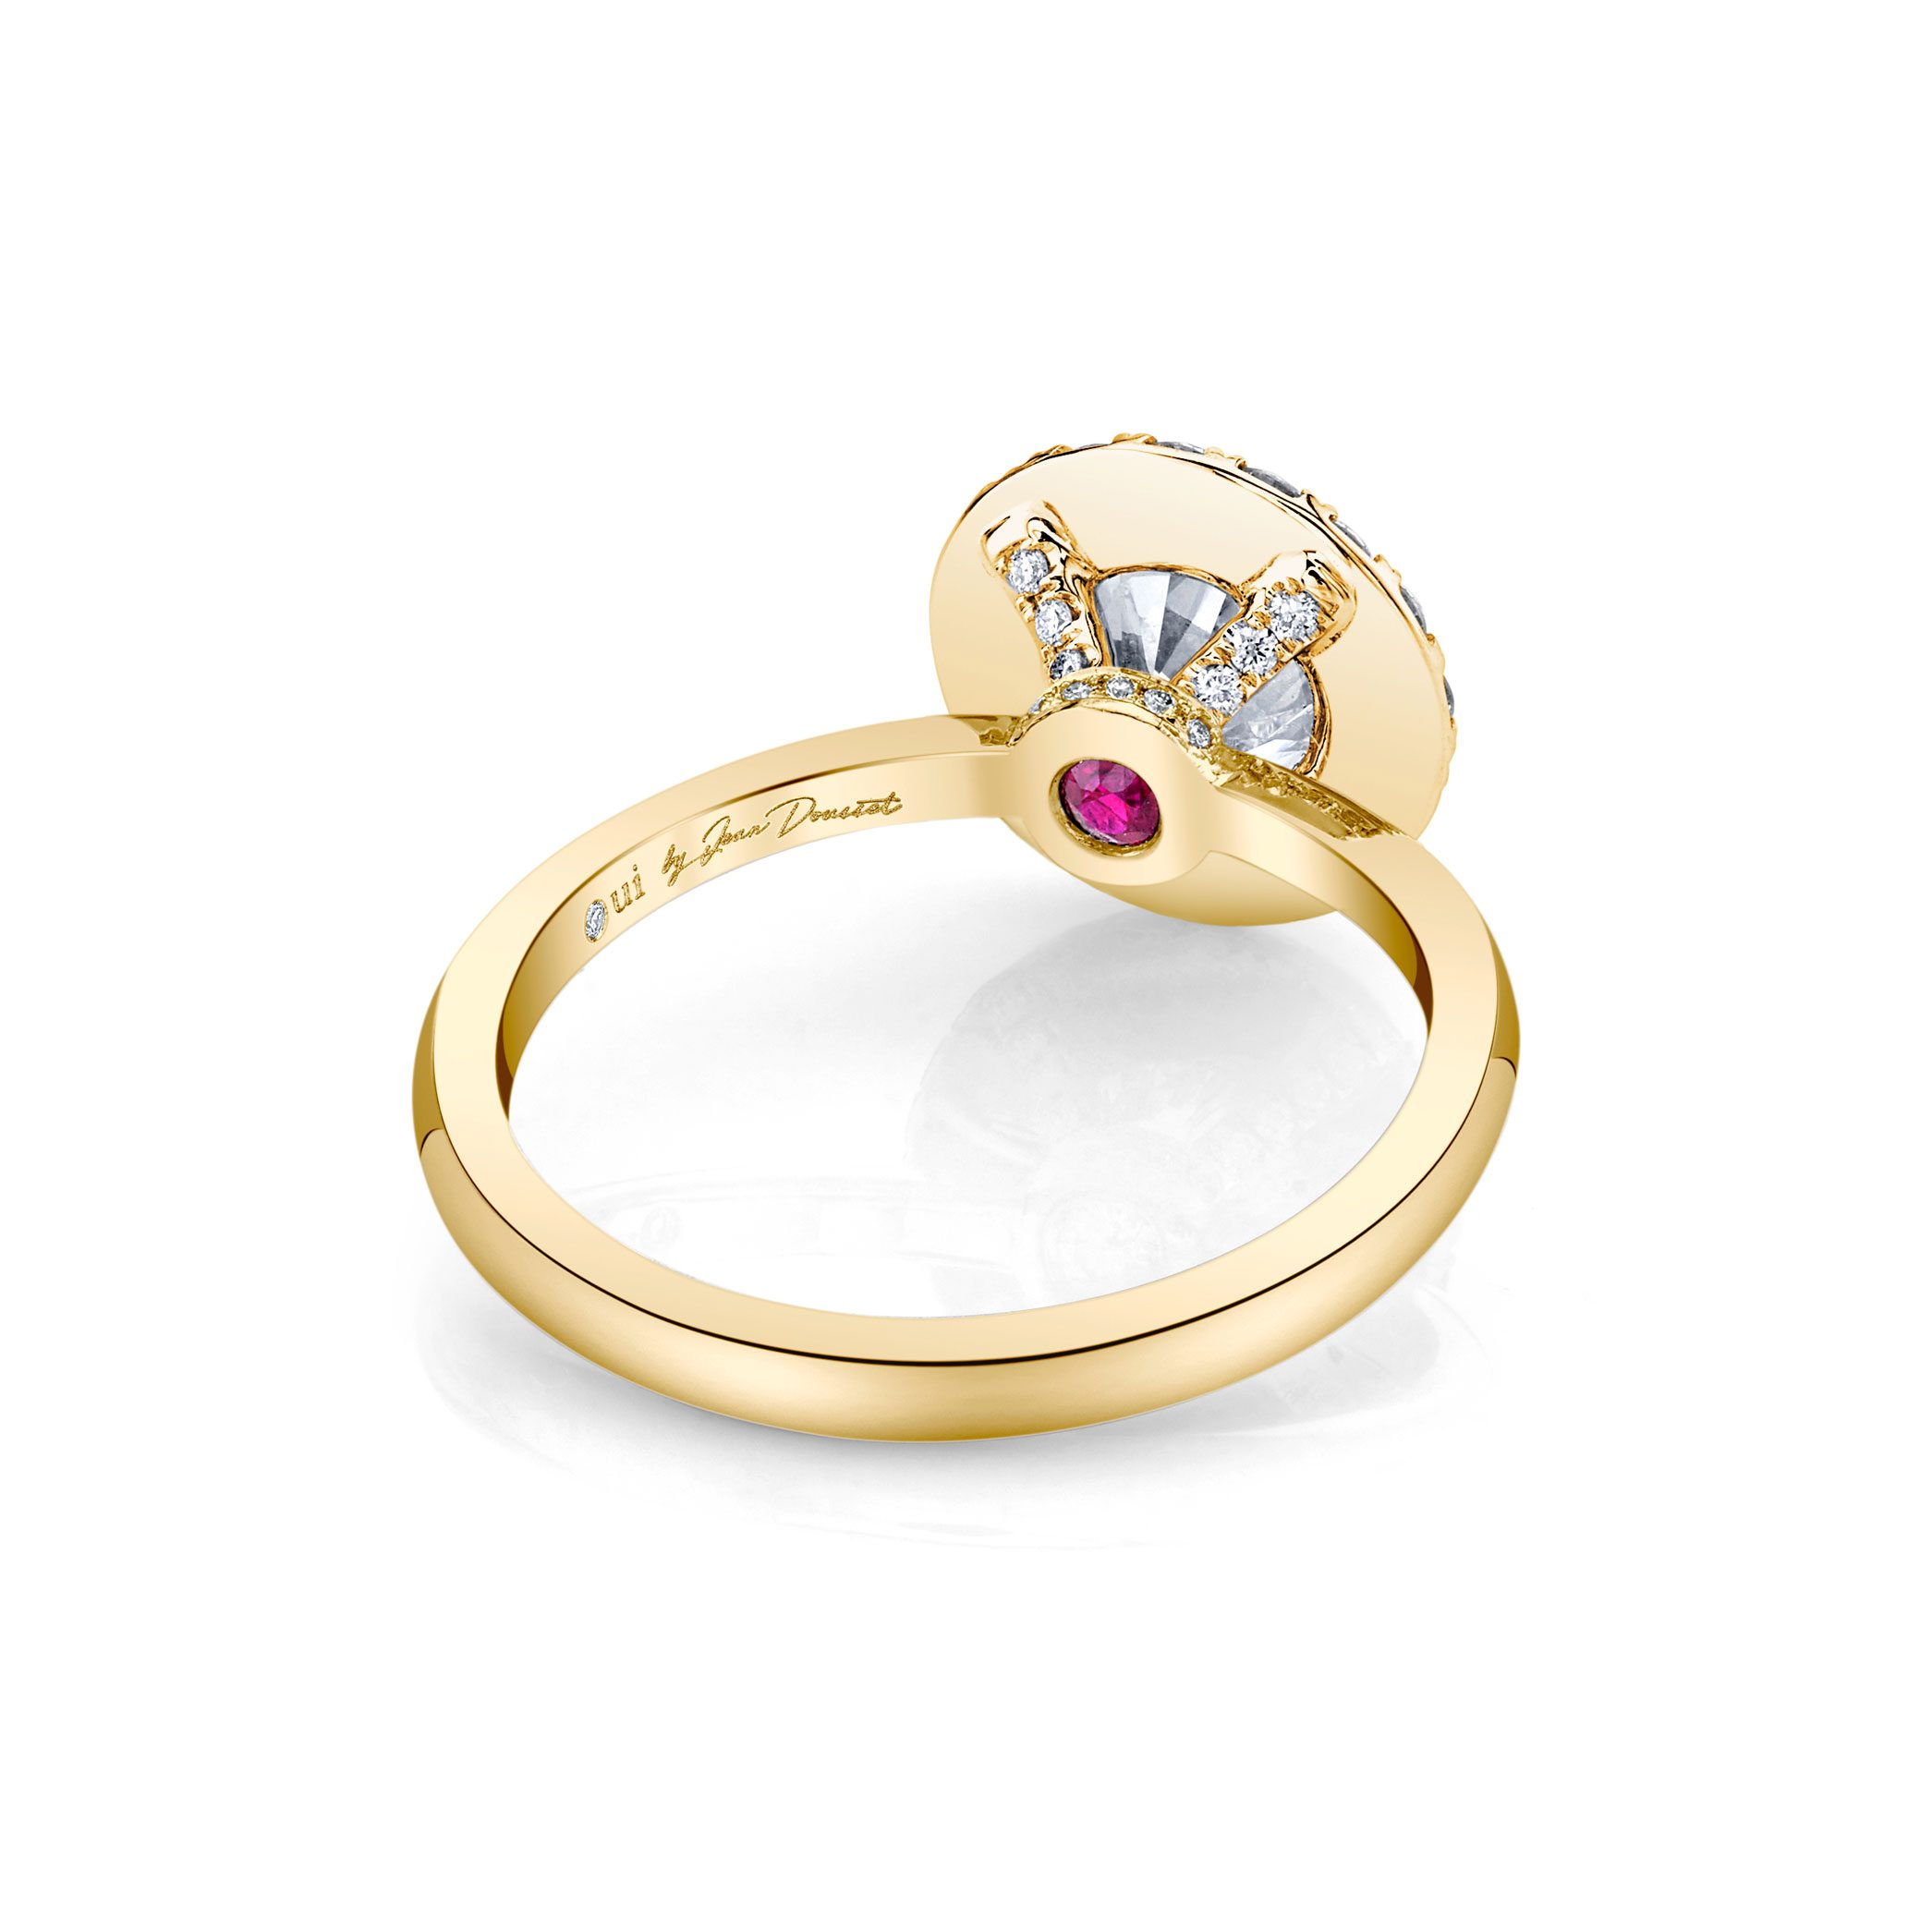 Colette Seamless Halo® Round Brilliant Engagement Ring 18k Yellow Gold Back Shot